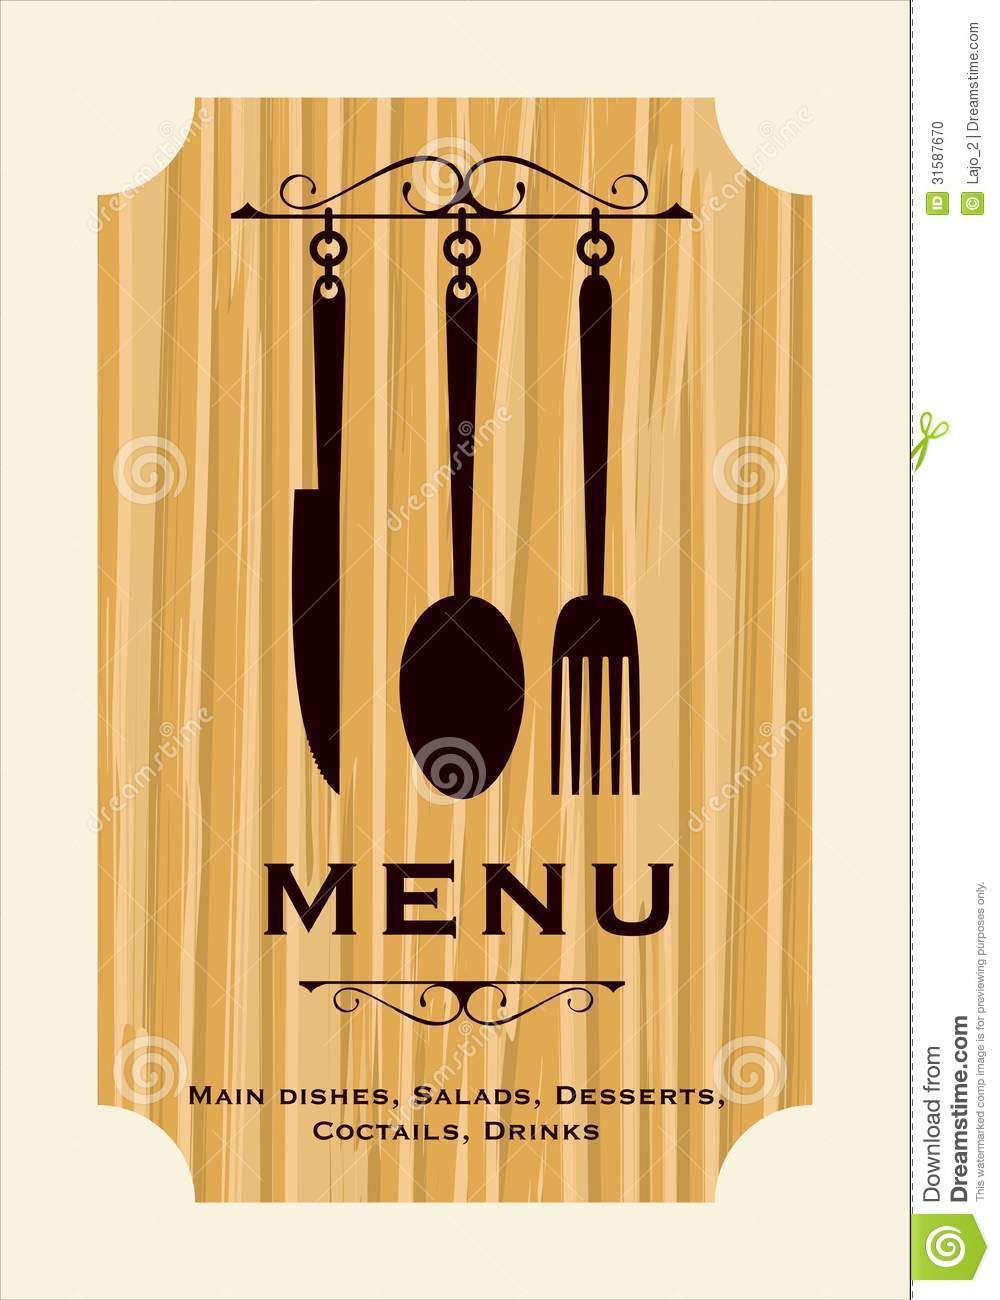 Restaurant menu design stock photo image